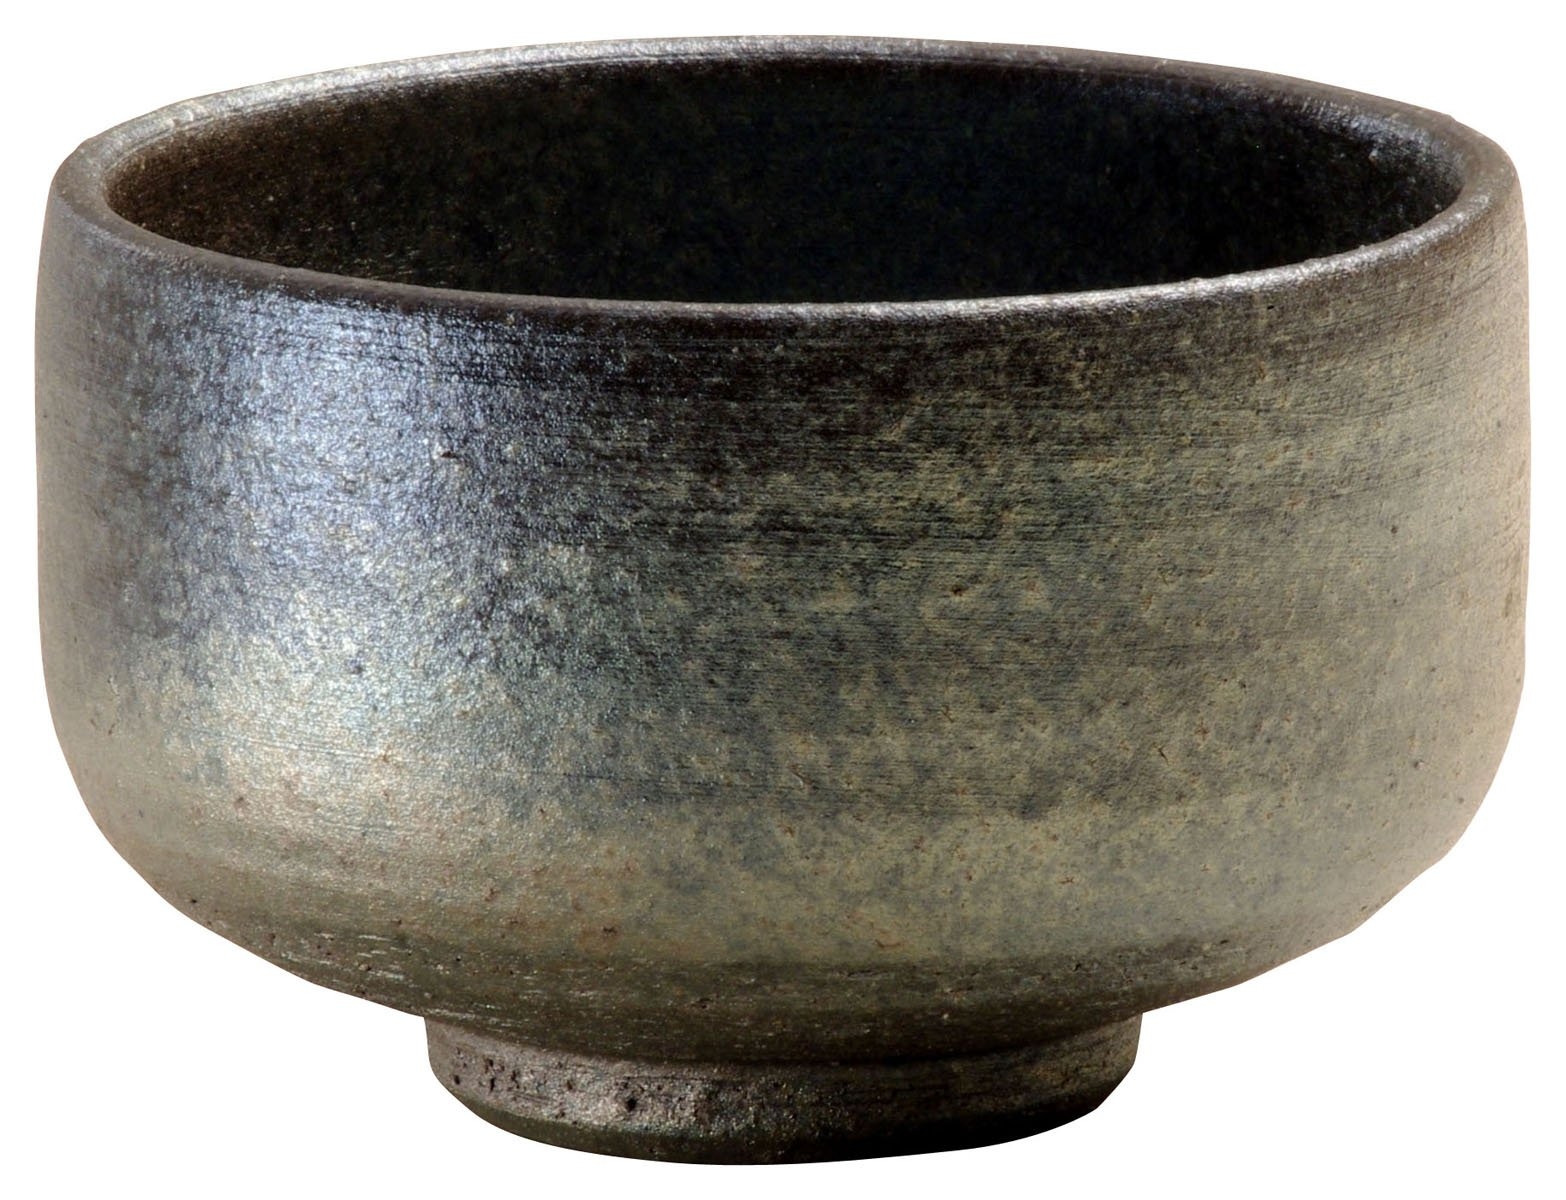 Shigaraki Ware Kiln Modulation Ibushi Matcha Bowl 3-2701(Japan Import)